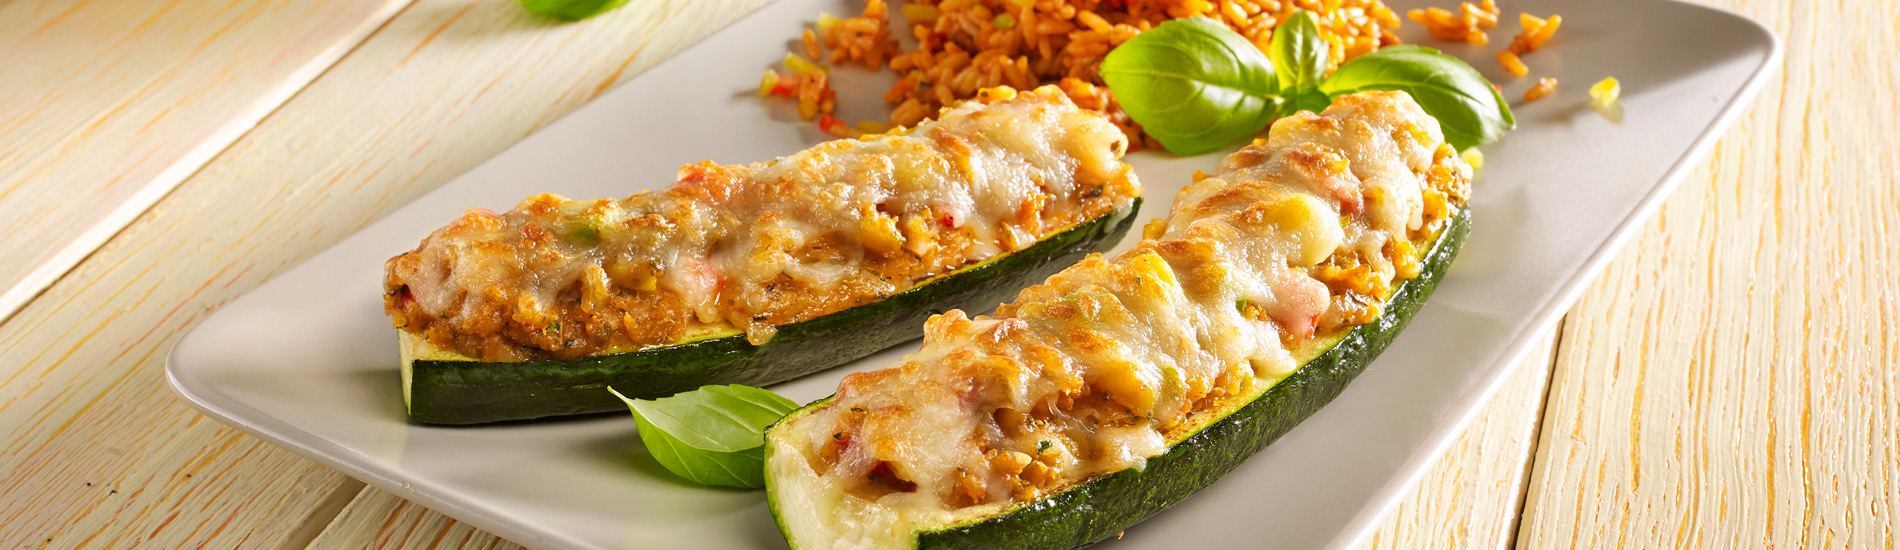 "Courgette ""Vital"" vegetable filling"